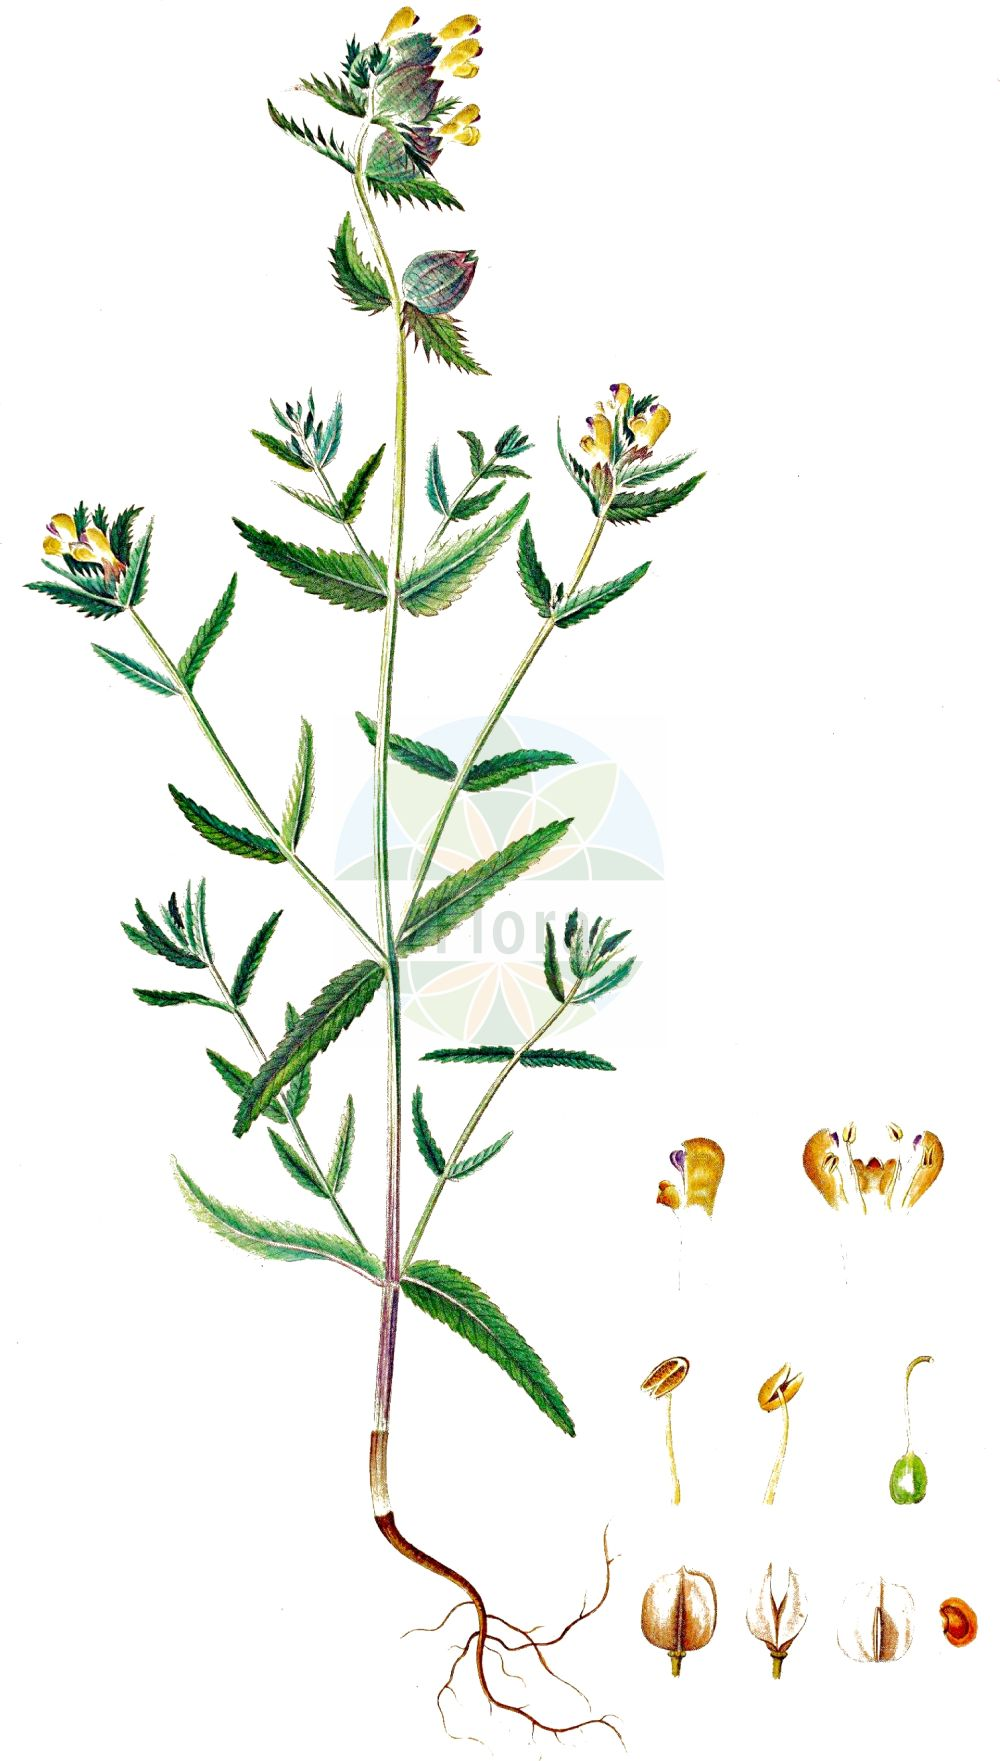 Historische Abbildung von Rhinanthus minor (Kleiner Klappertopf - Yellow-rattle). Das Bild zeigt Blatt, Bluete, Frucht und Same. ---- Historical Drawing of Rhinanthus minor (Kleiner Klappertopf - Yellow-rattle).The image is showing leaf, flower, fruit and seed.(Rhinanthus minor,Kleiner Klappertopf,Yellow-rattle,Alectorolophus borealis,Alectorolophus crista-galli,Alectorolophus drummond-hayi,Alectorolophus minor,Alectorolophus monticola,Alectorolophus parviflorus,Alectorolophus rusticulus,Alectorolophus stenophyllus,Rhinanthus balticus,Rhinanthus borealis,Rhinanthus crista-galli L. var.,Rhinanthus hercynicus,Rhinanthus minor,Rhinanthus minor L. subsp.,Rhinanthus minor L. var.,Rhinanthus nigricans,Rhinanthus rusticulus,Rhinanthus stenophyllus,Kleiner Klappertopf,Yellow-rattle,Cockscomb Rattleweed,Little Yellow Rattle,Lesser Yellow Rattle,Rhinanthus,Klappertopf,Yellow Rattle,Orobanchaceae,Sommerwurzgewaechse,Broomrape family,Blatt,Bluete,Frucht,Same,leaf,flower,fruit,seed,Oeder (1761-1883))